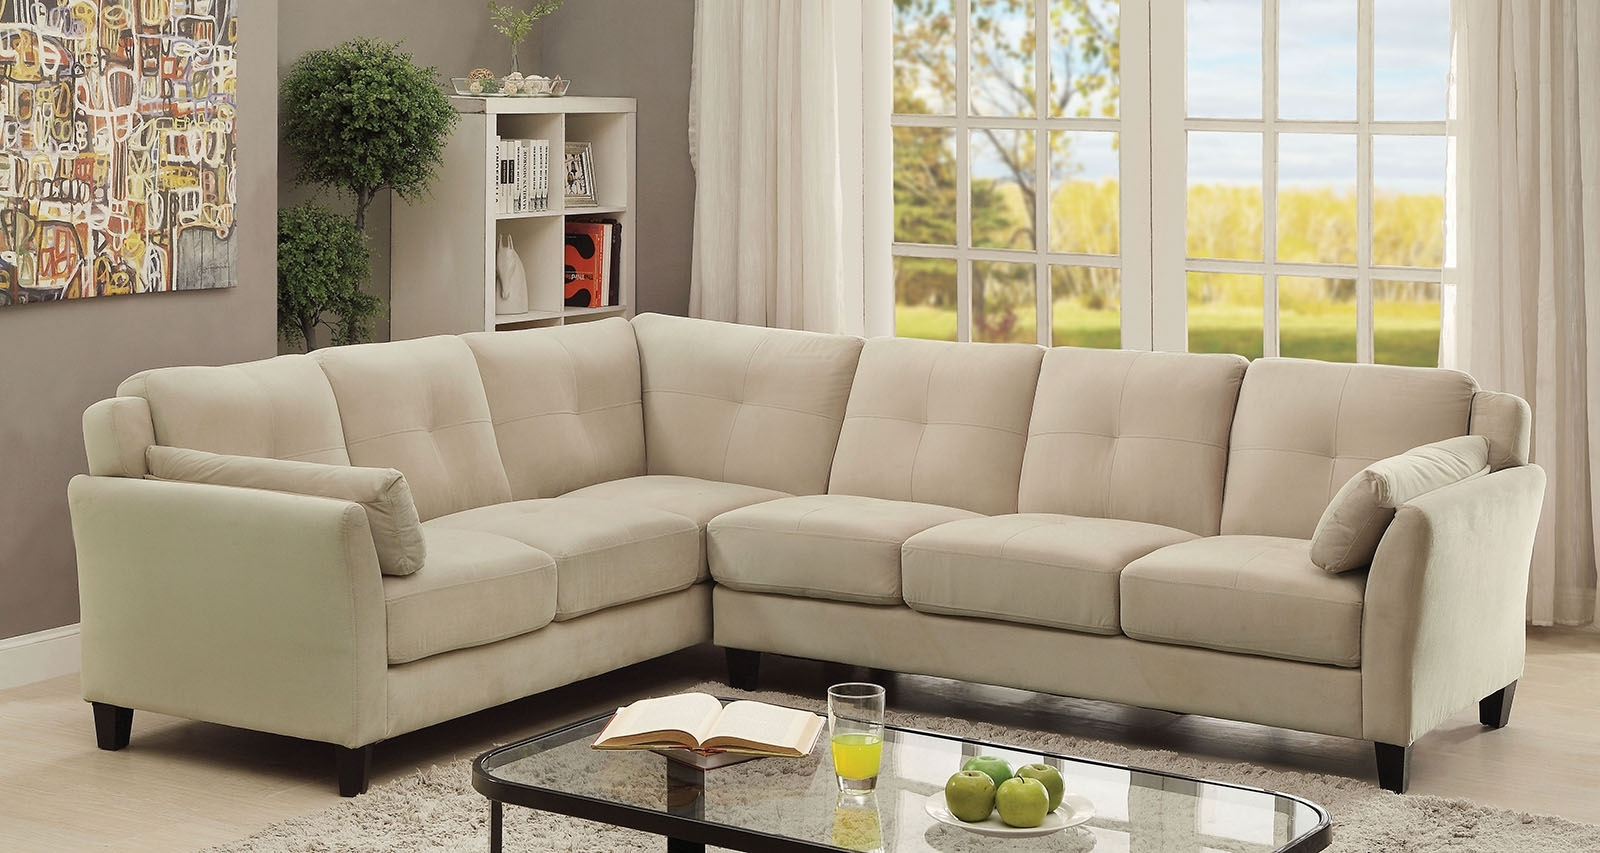 Peever Ii Beige Sectional | Andrew's Furniture And Mattress Inside Beige Sectional Sofas (Image 9 of 10)